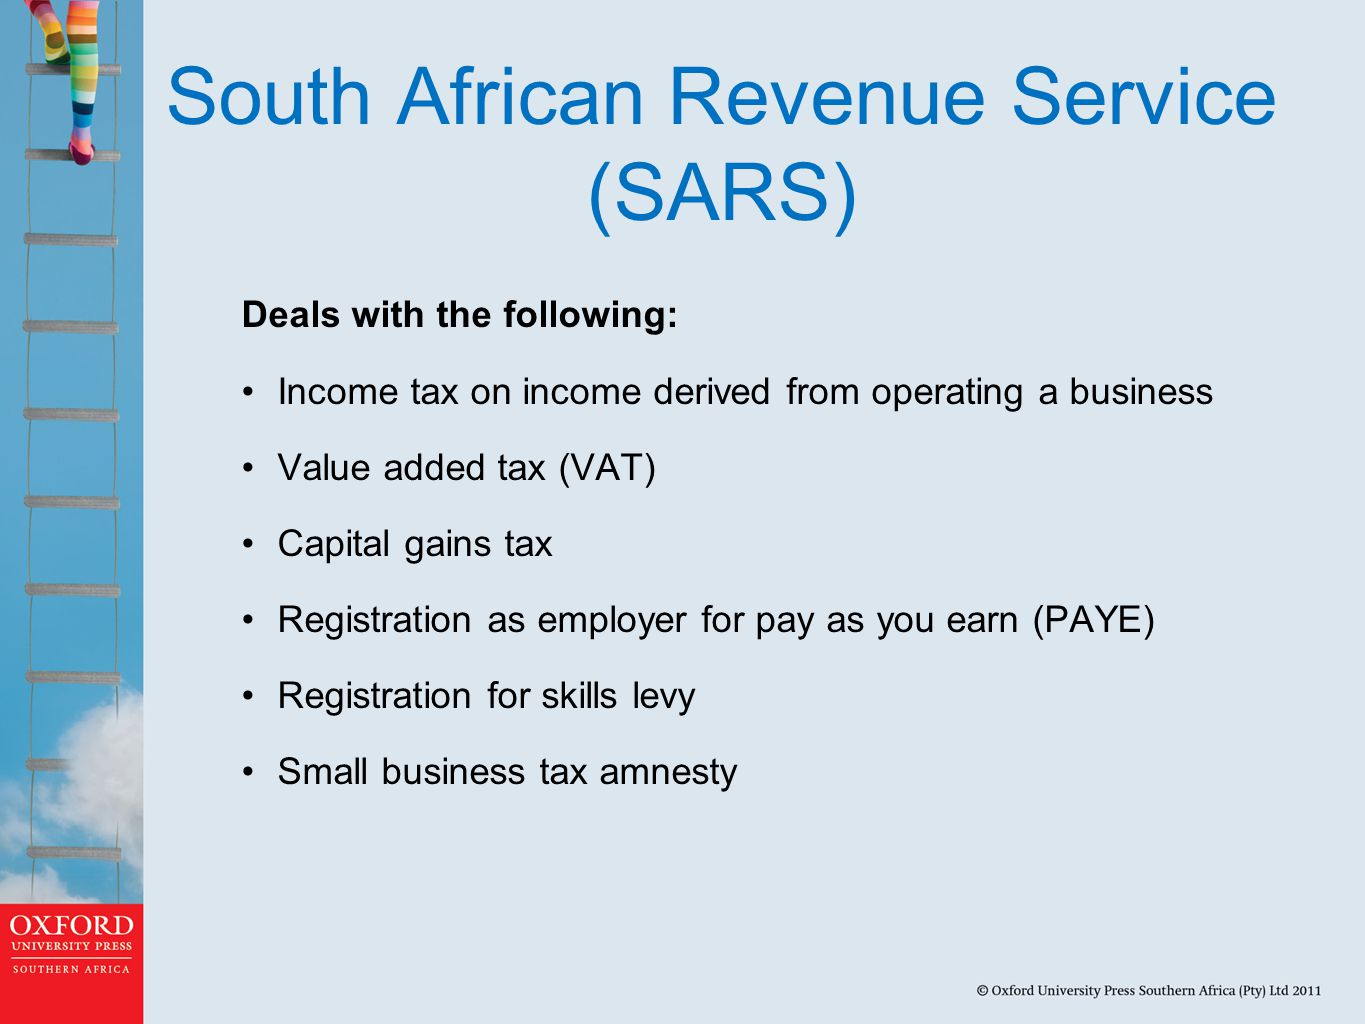 South African Revenue Service (SARS)